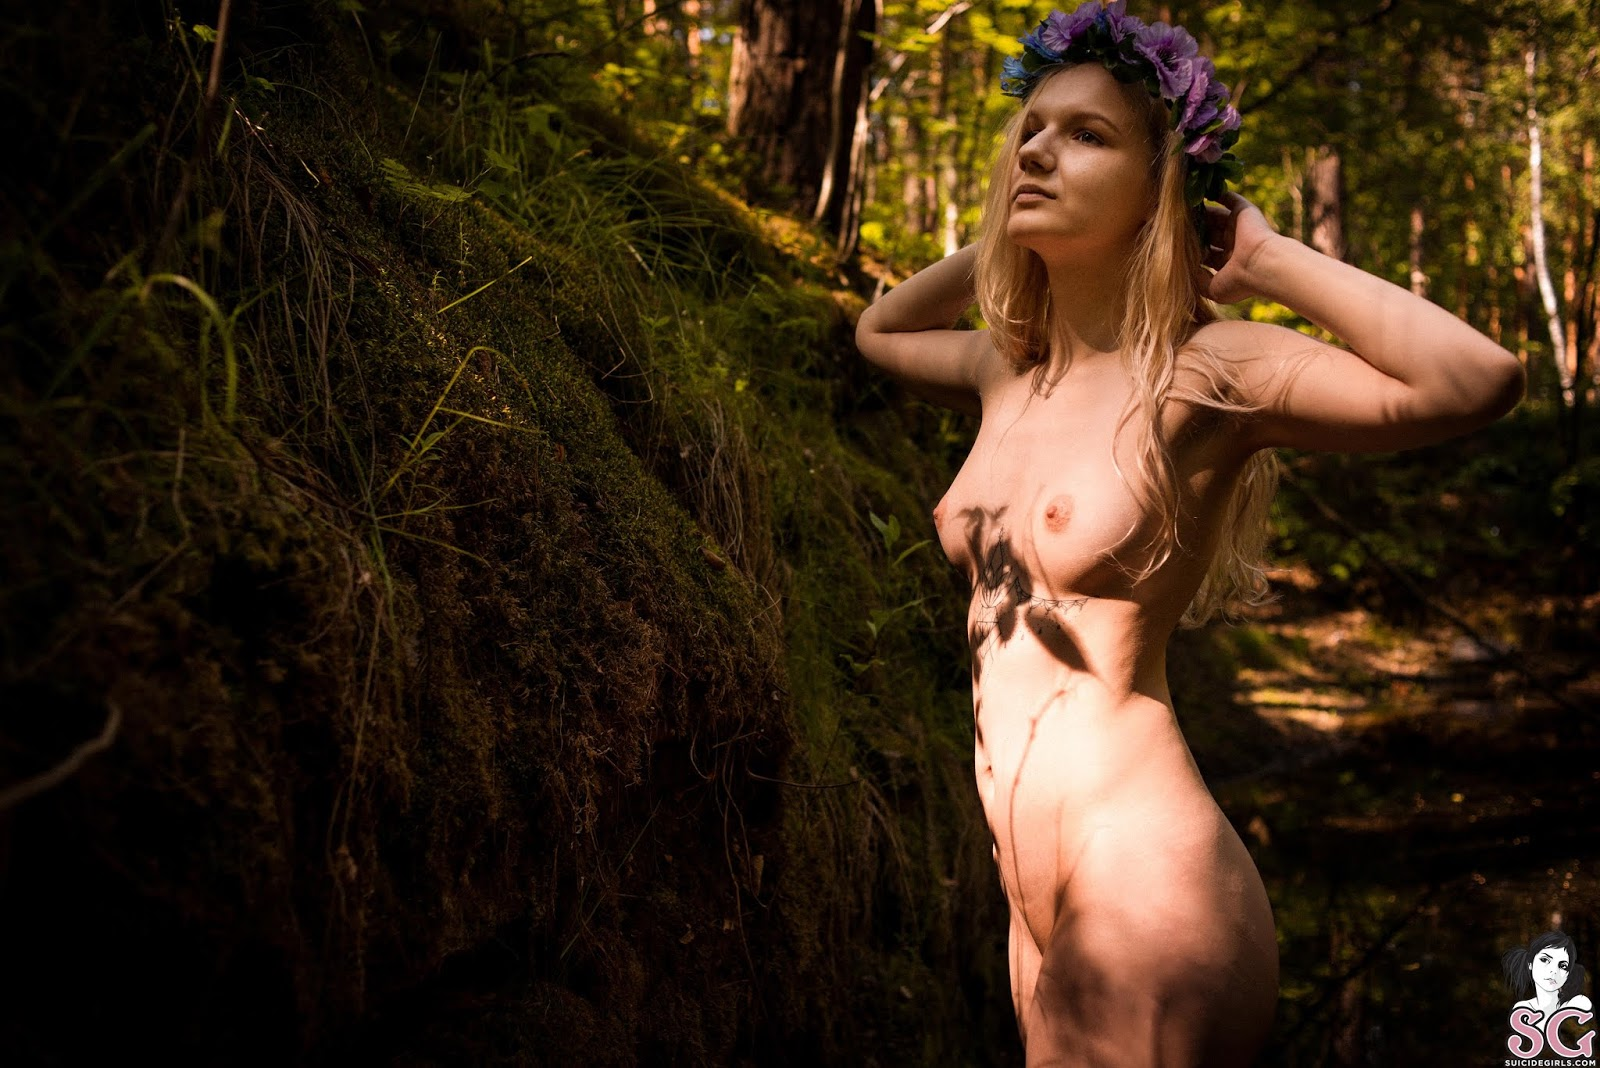 nymph-gif-nude